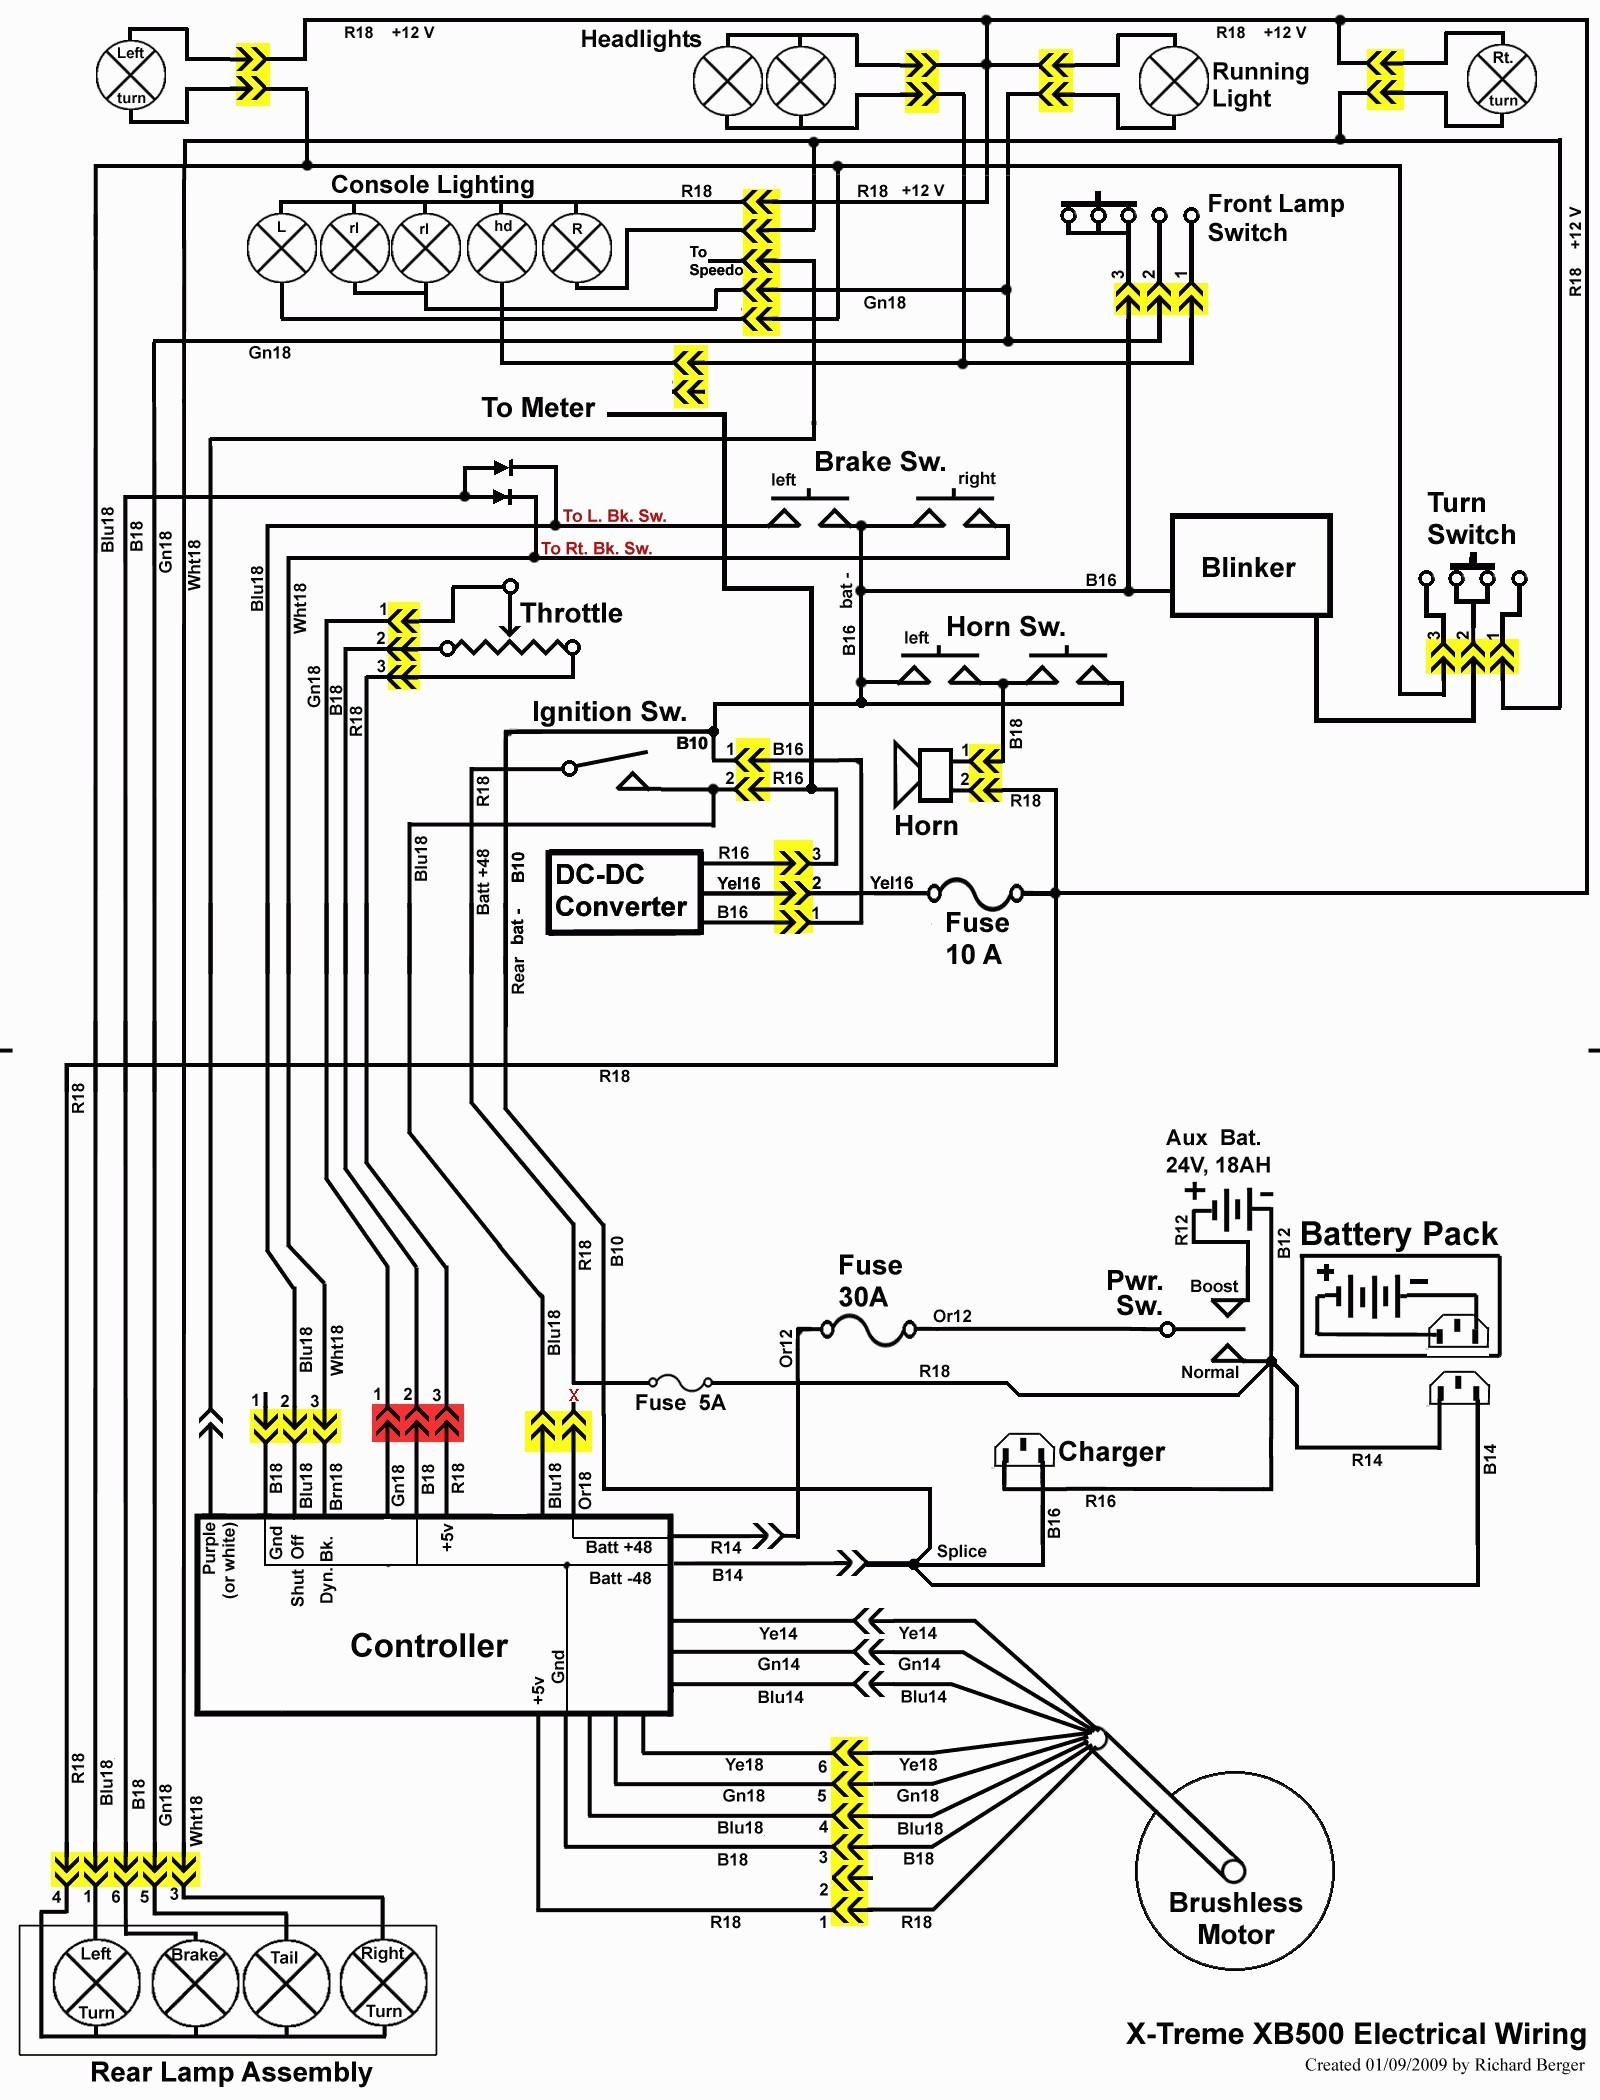 1997 club car ds wiring diagram 48 volt trusted wiring diagram rh dafpods co